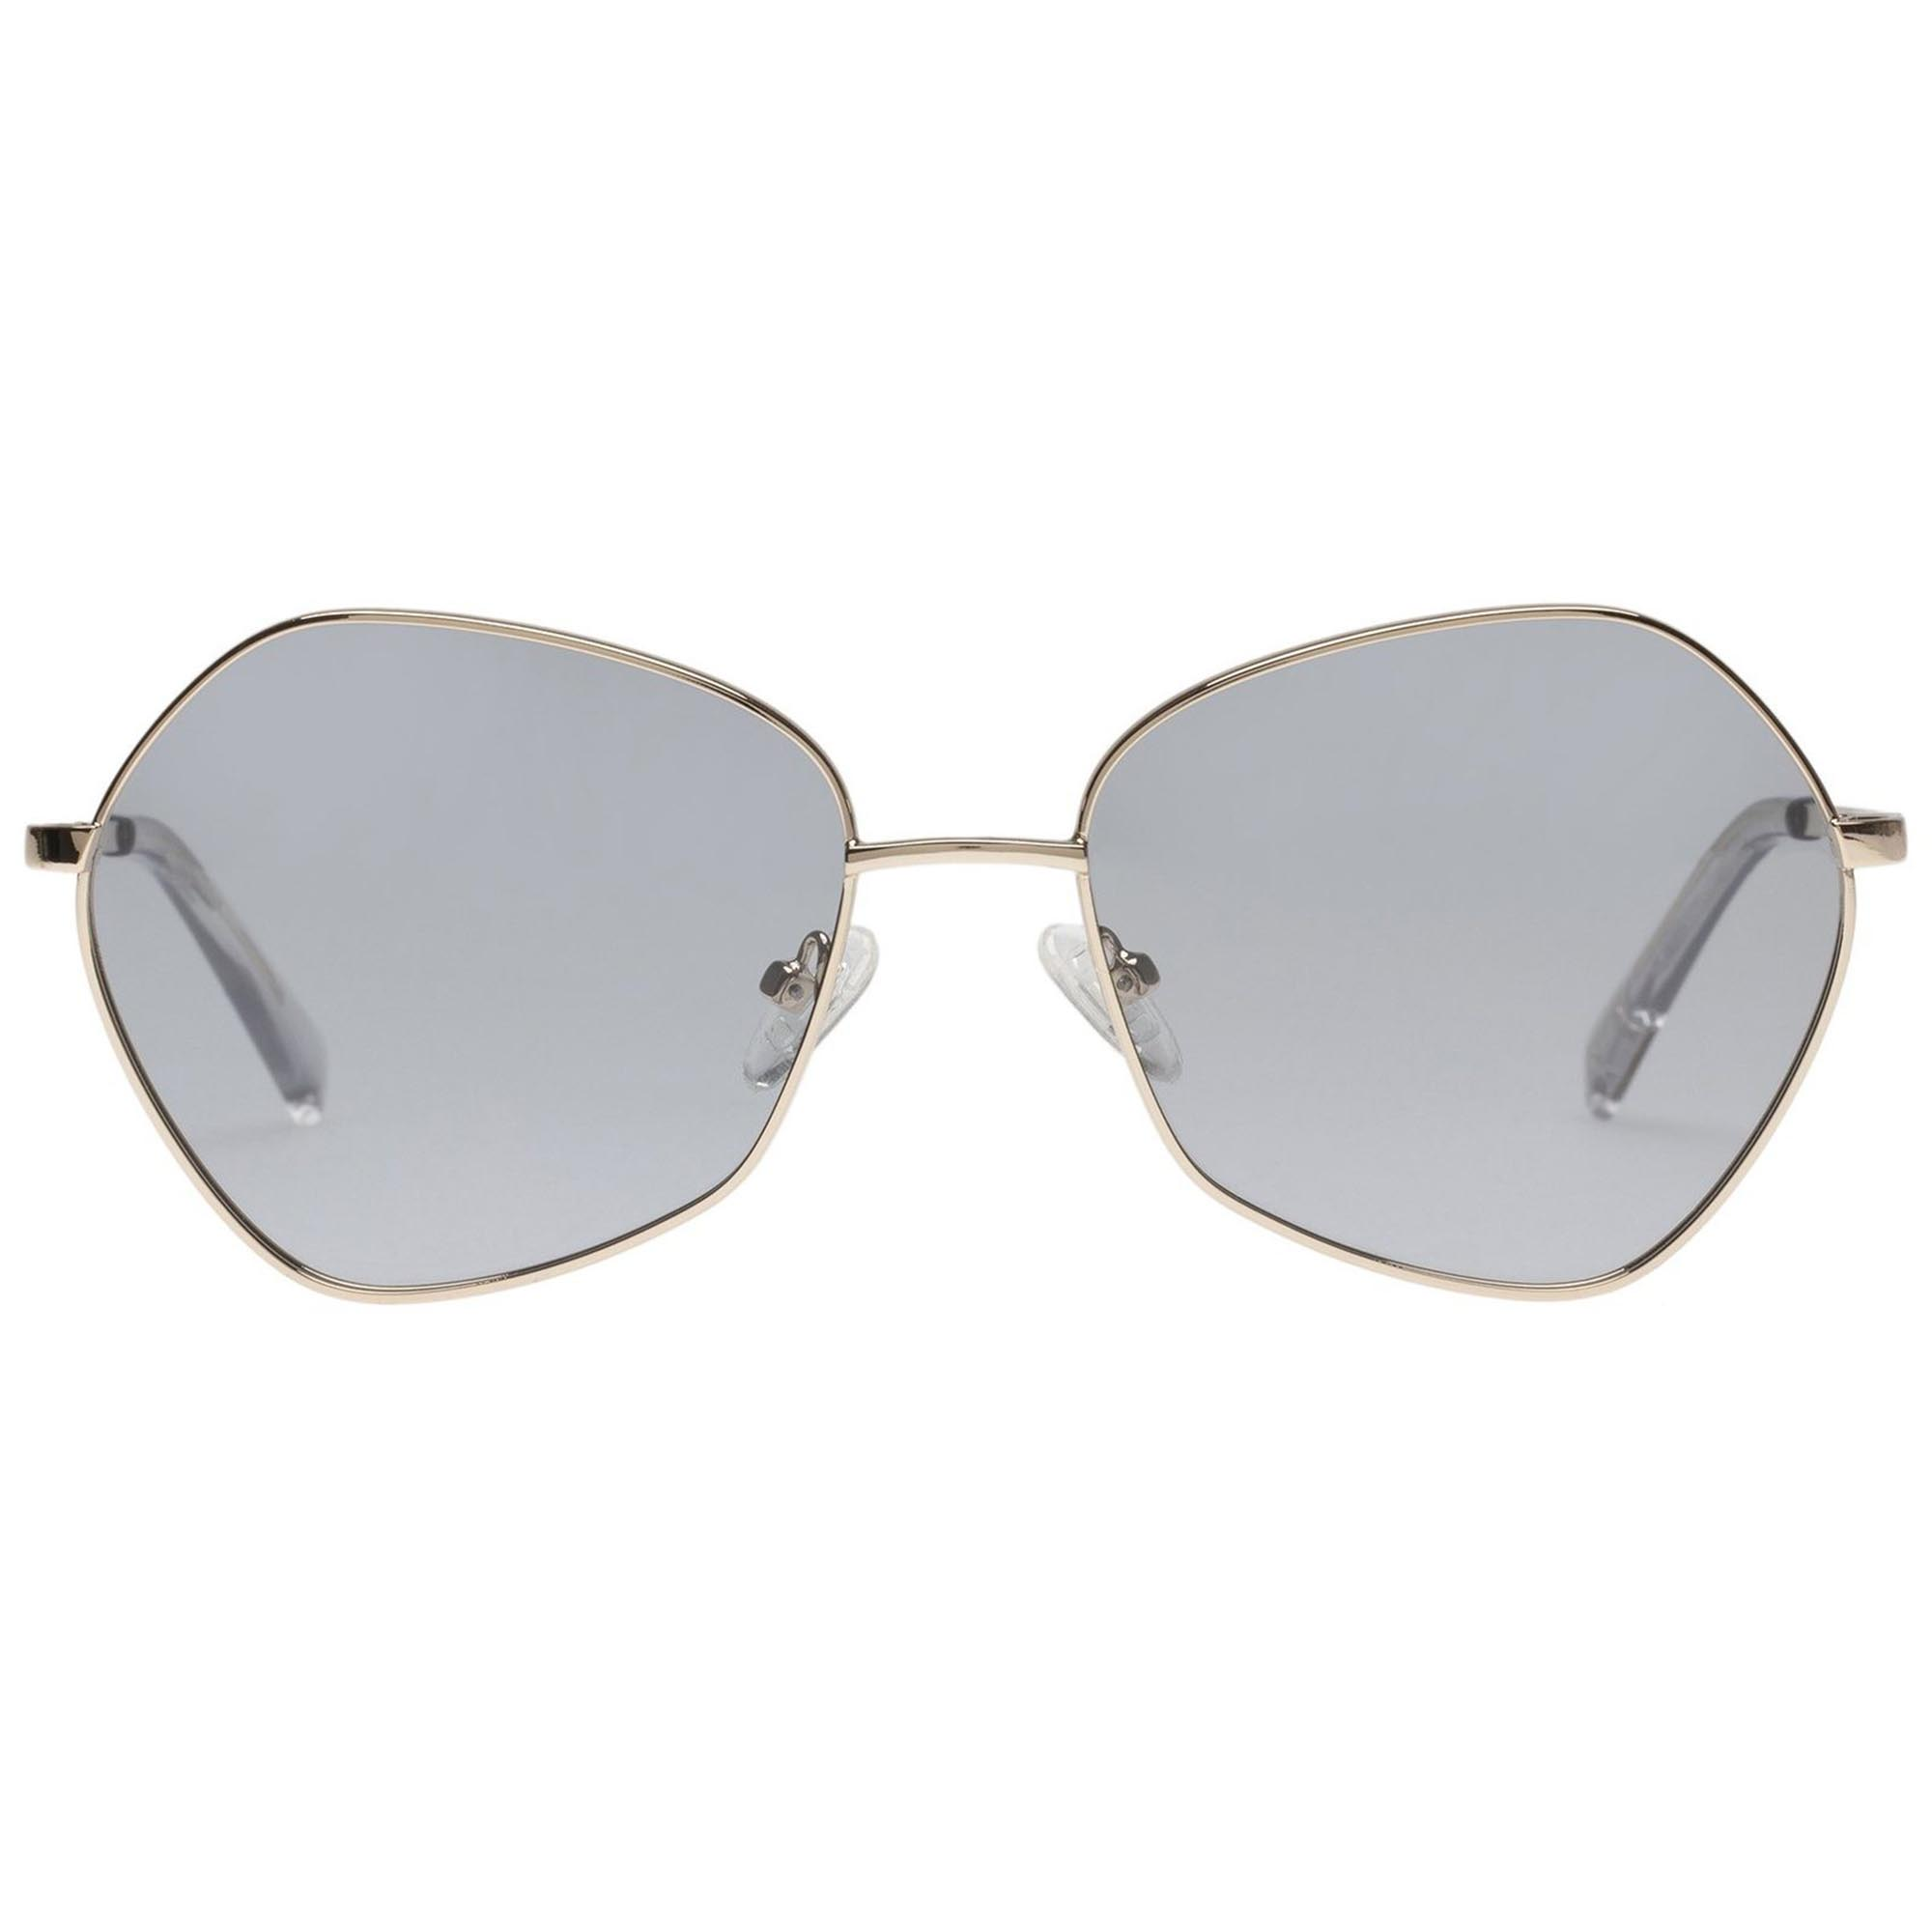 Le Specs- Escadrille- Bright Gold